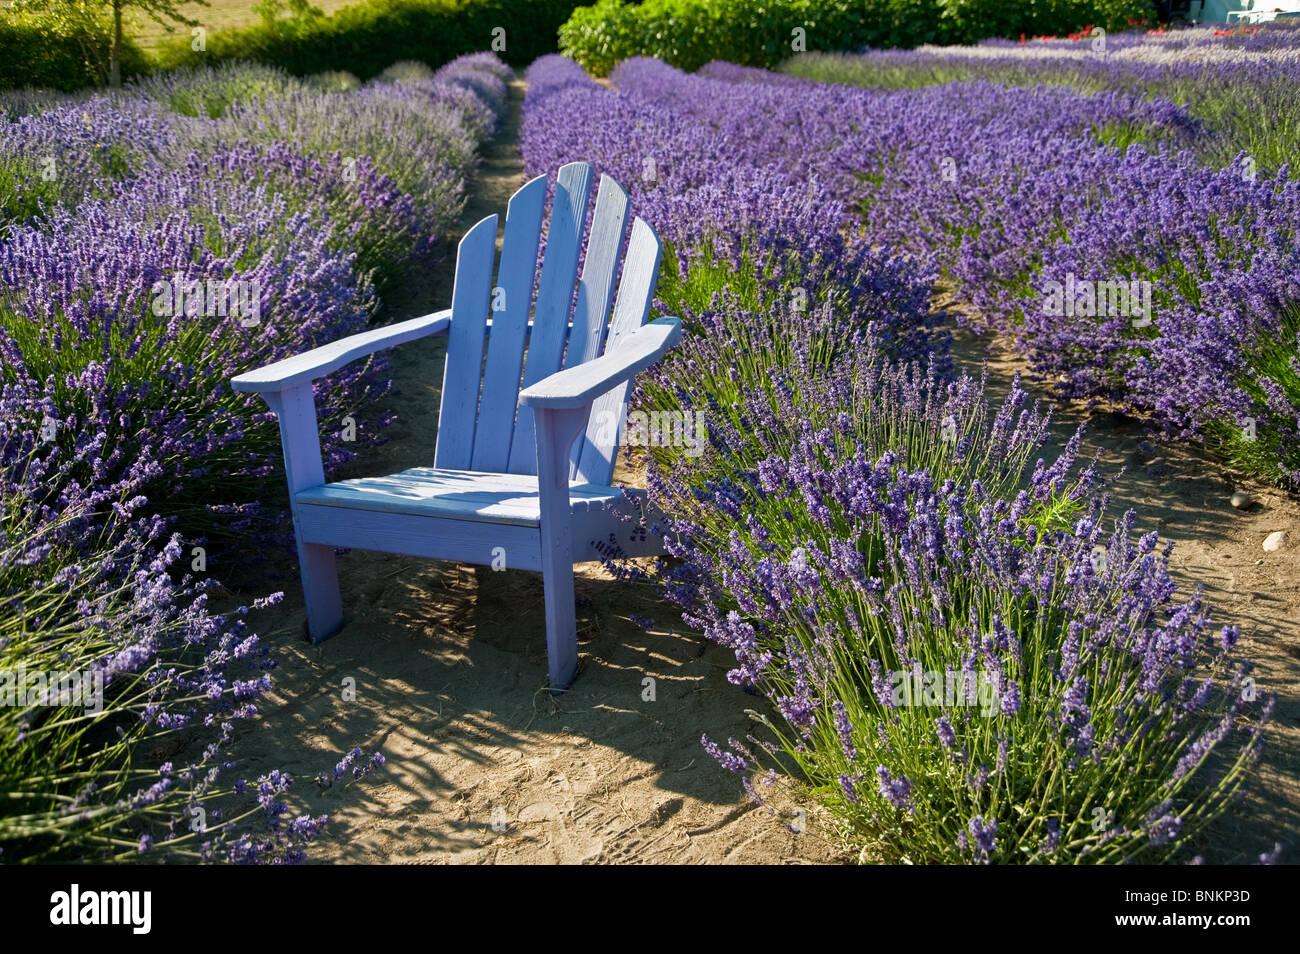 An light blue colored wooden chair in the middle of blooming lavenders - Stock Image